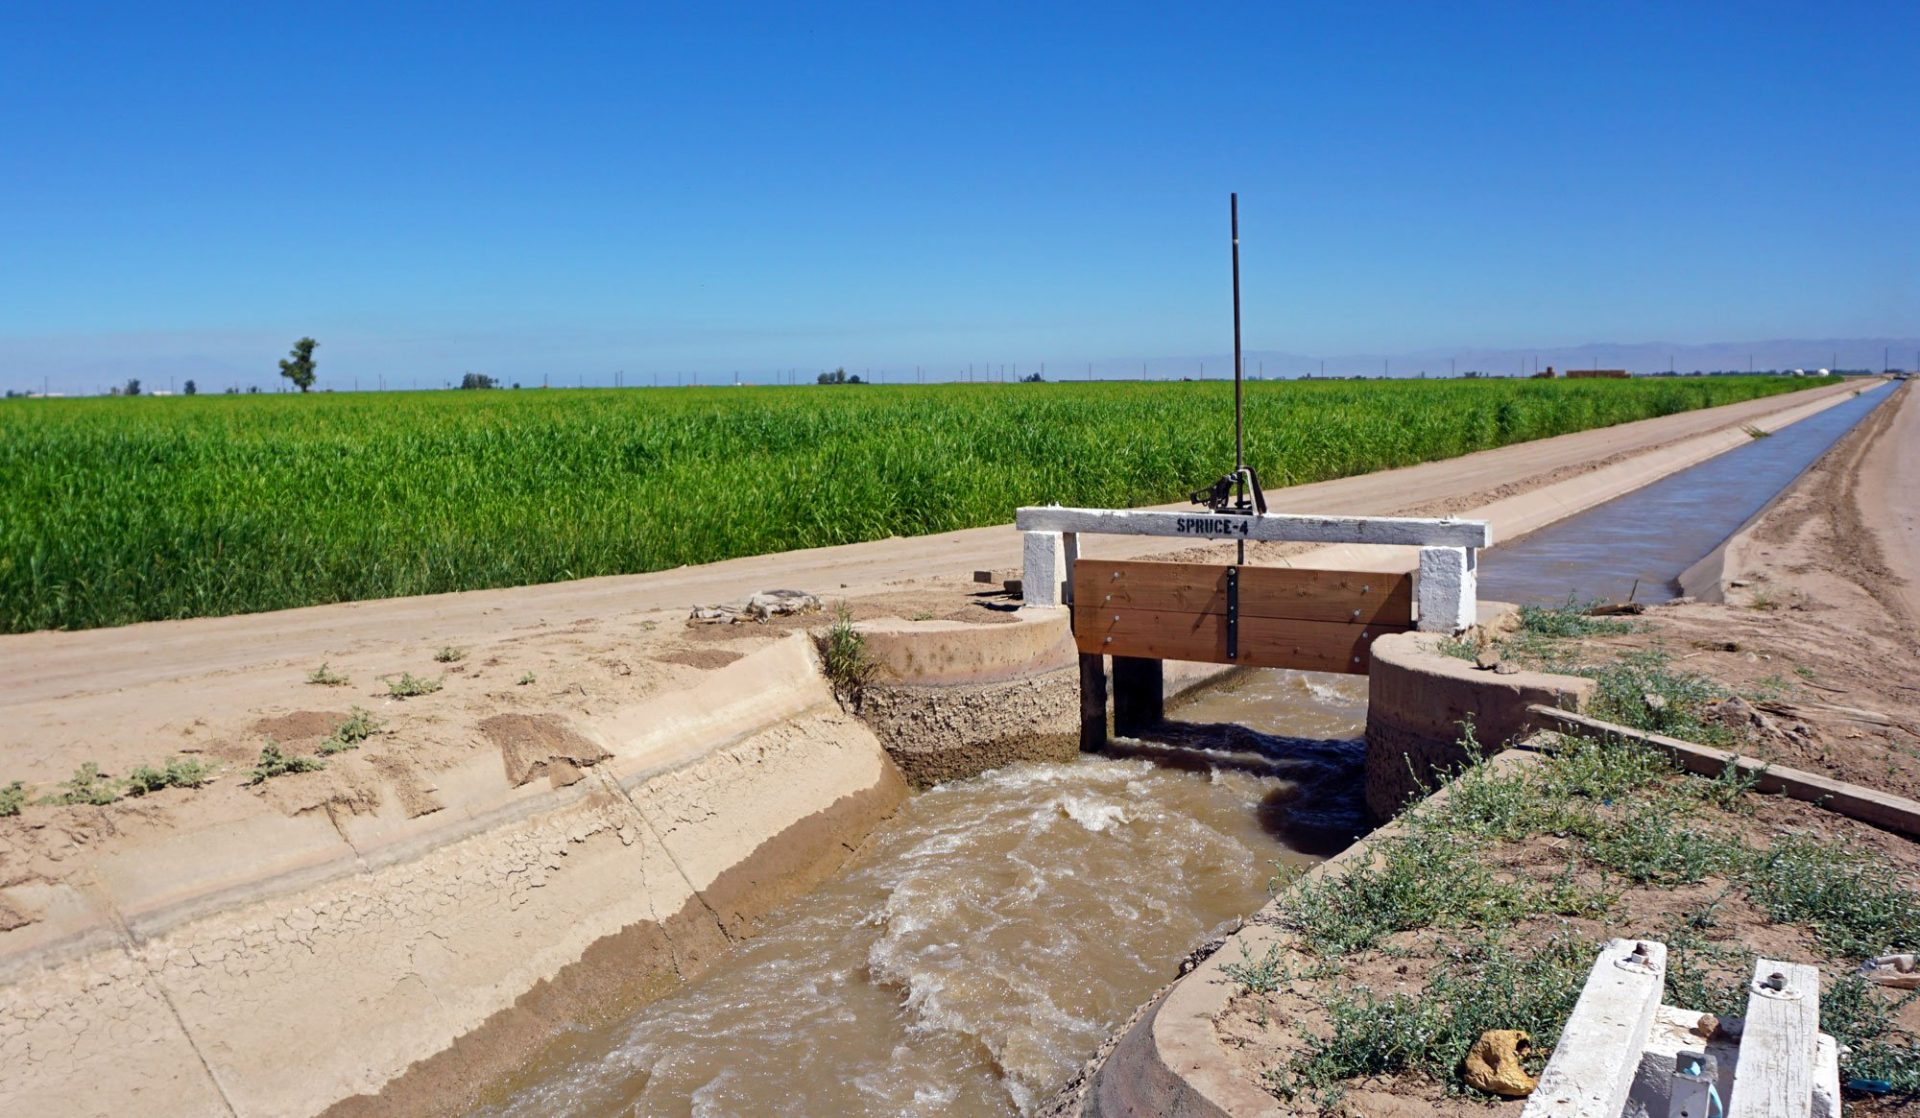 Imperial Valley – A New Frontier for People and Earth